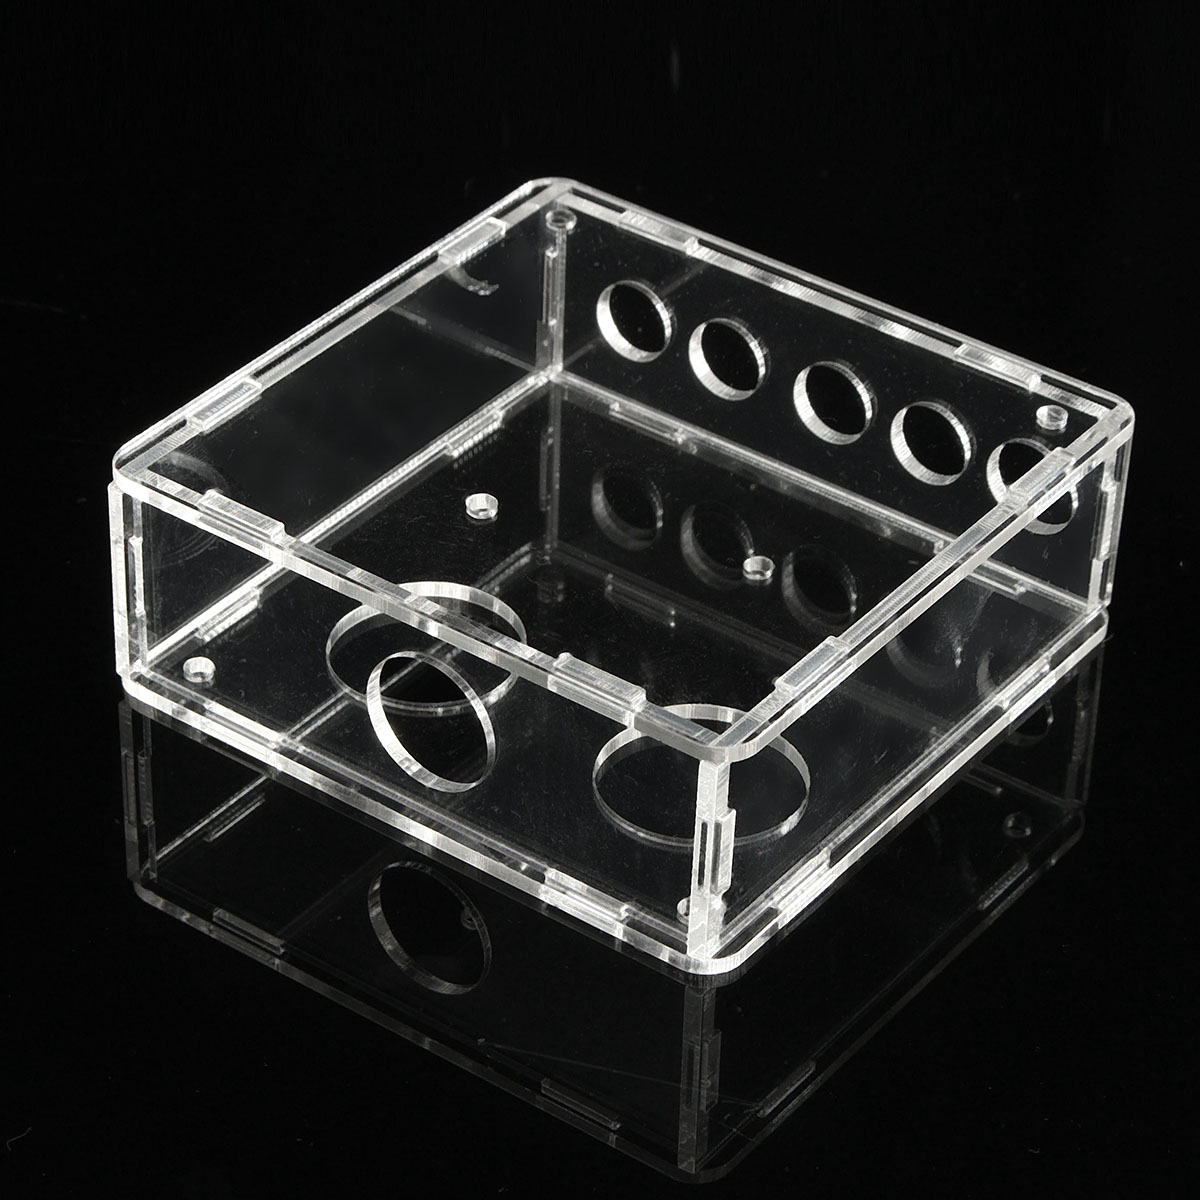 Acrylic Transparent Shell Housing For 6J1 Valve Preamp Tube PreAmplifier Board Case